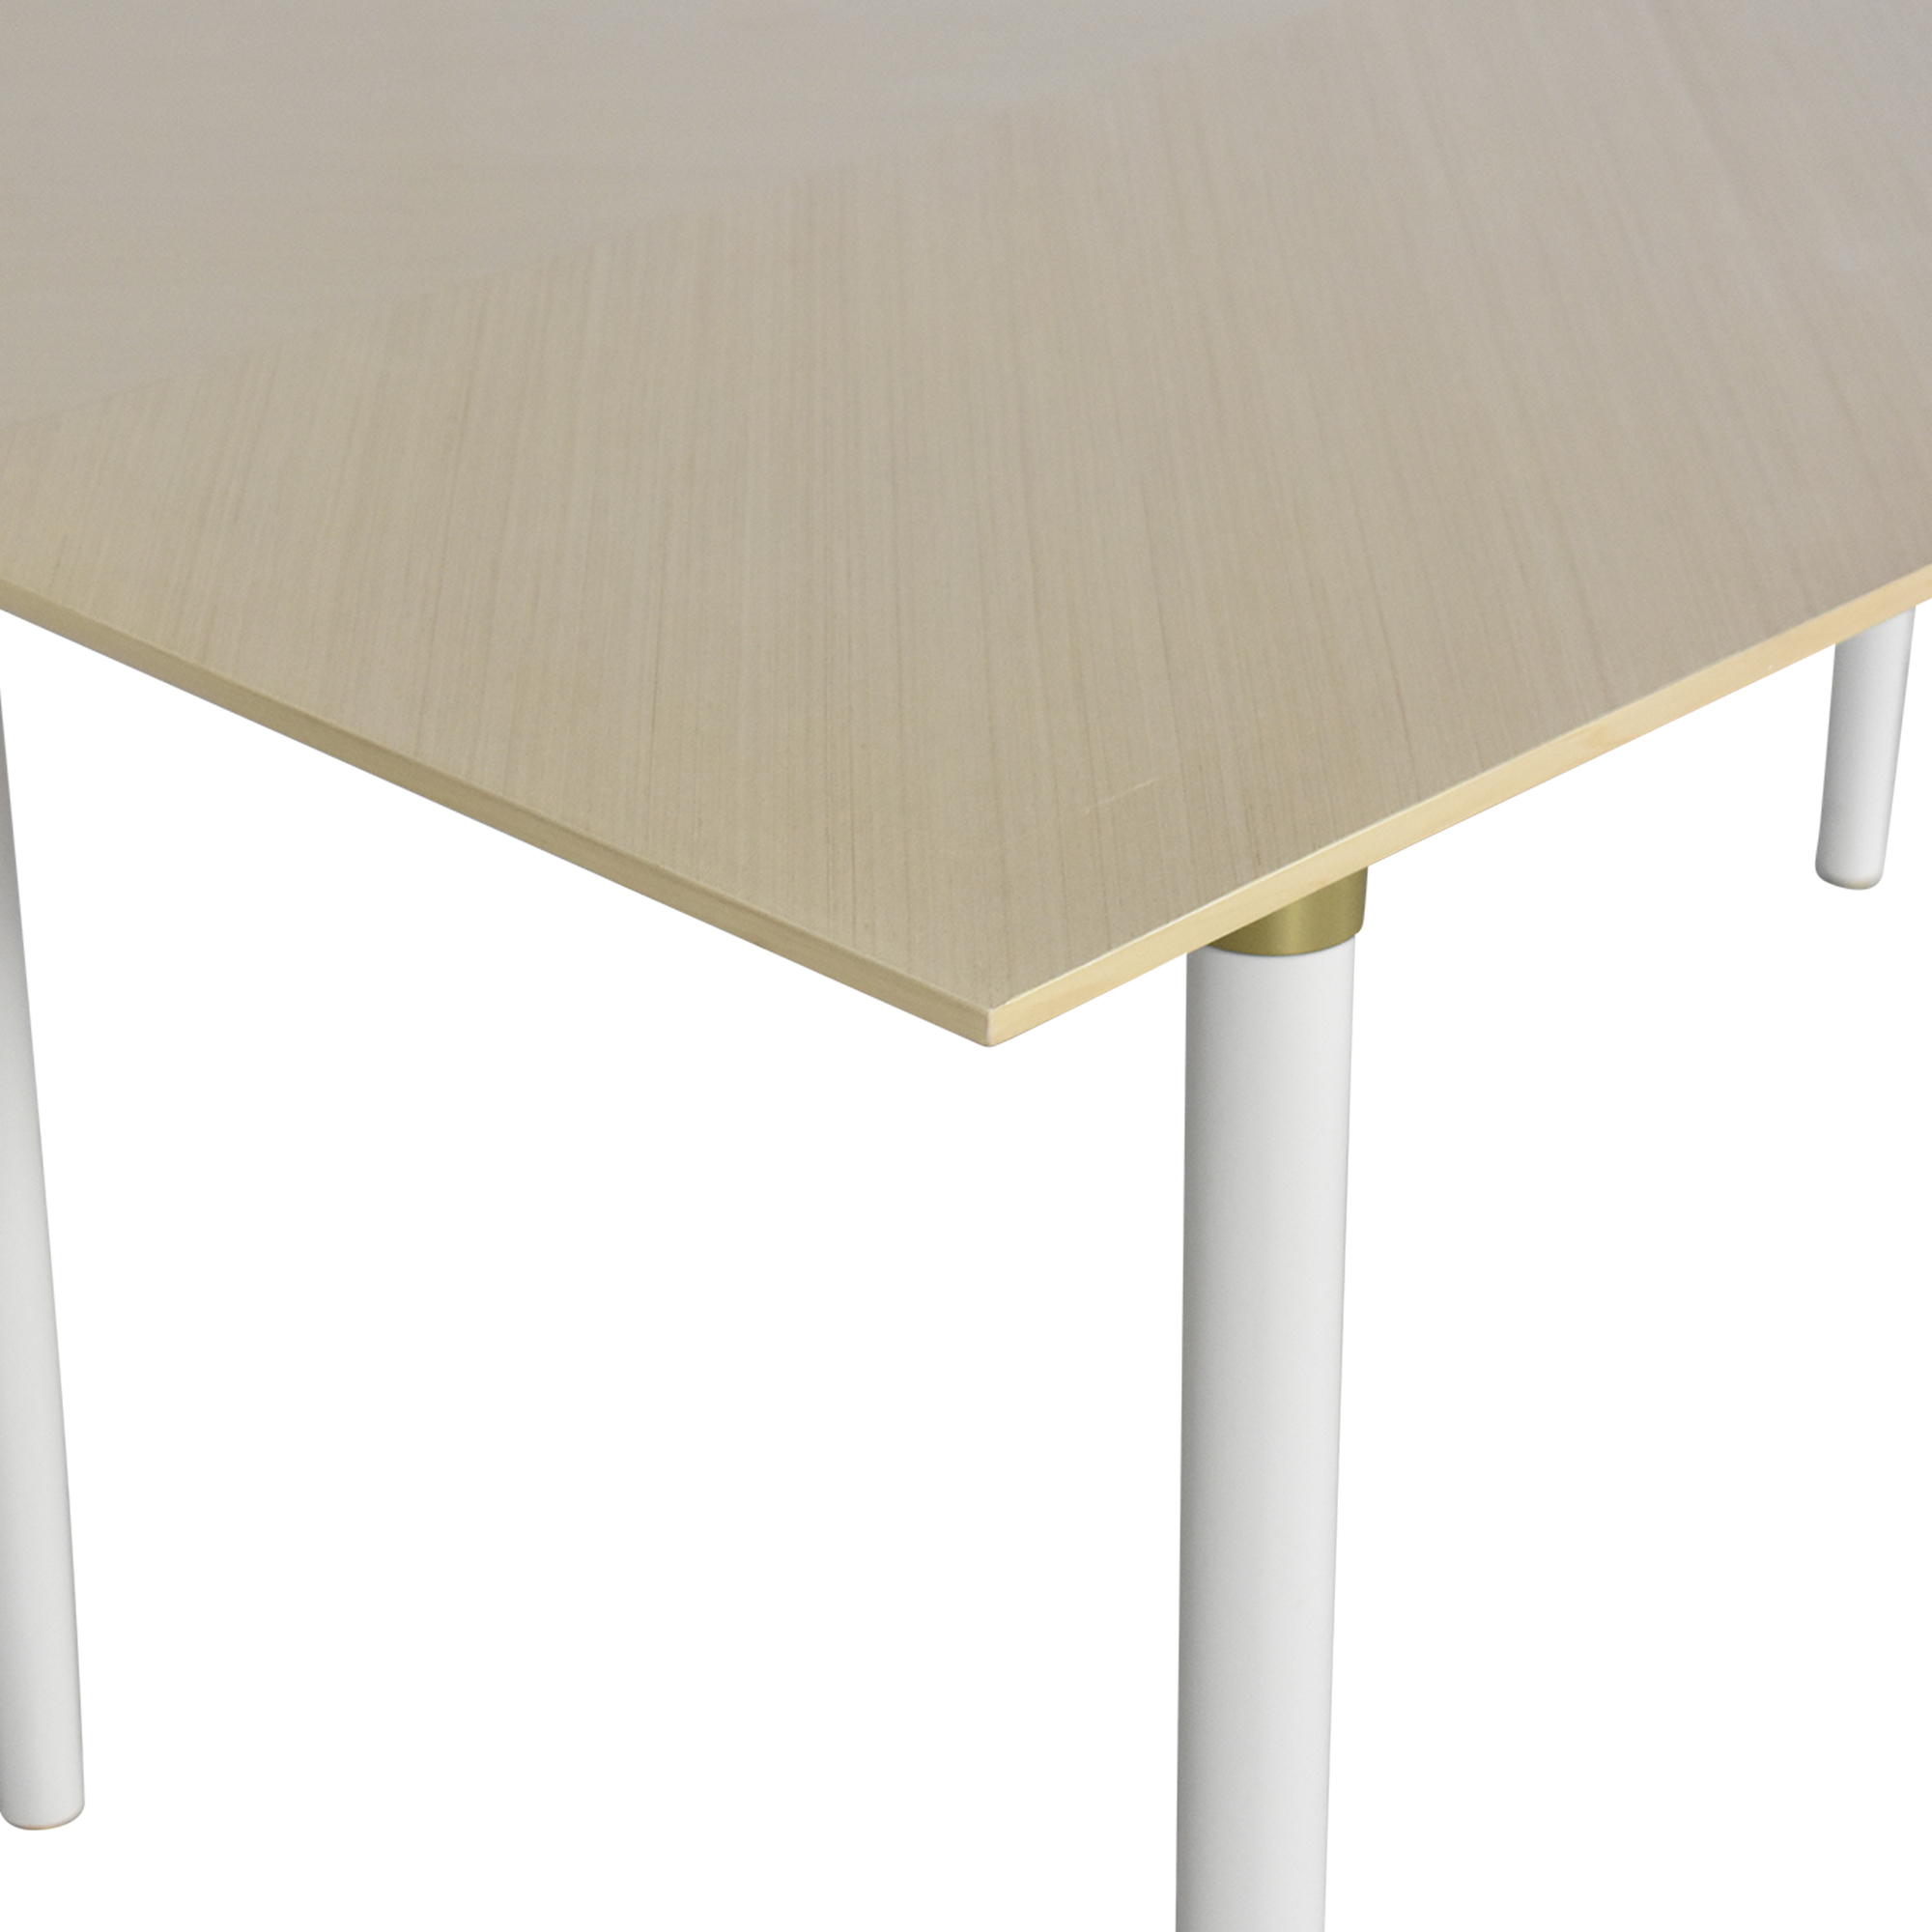 Anthropologie Anthropologie Expandable Dining Table on sale